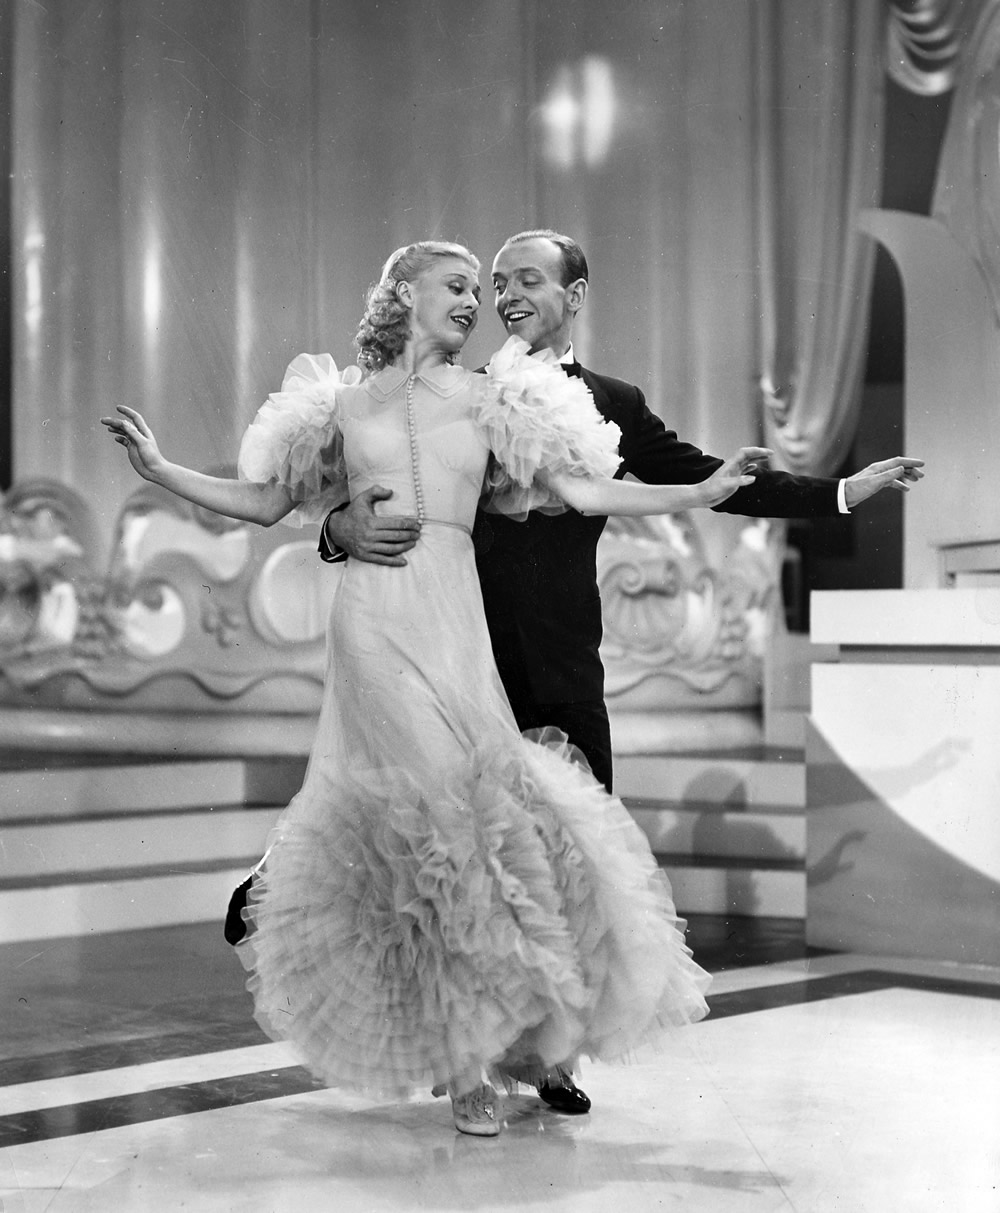 Pleasing One Time Ginger Rogers Home Sold Download Free Architecture Designs Grimeyleaguecom